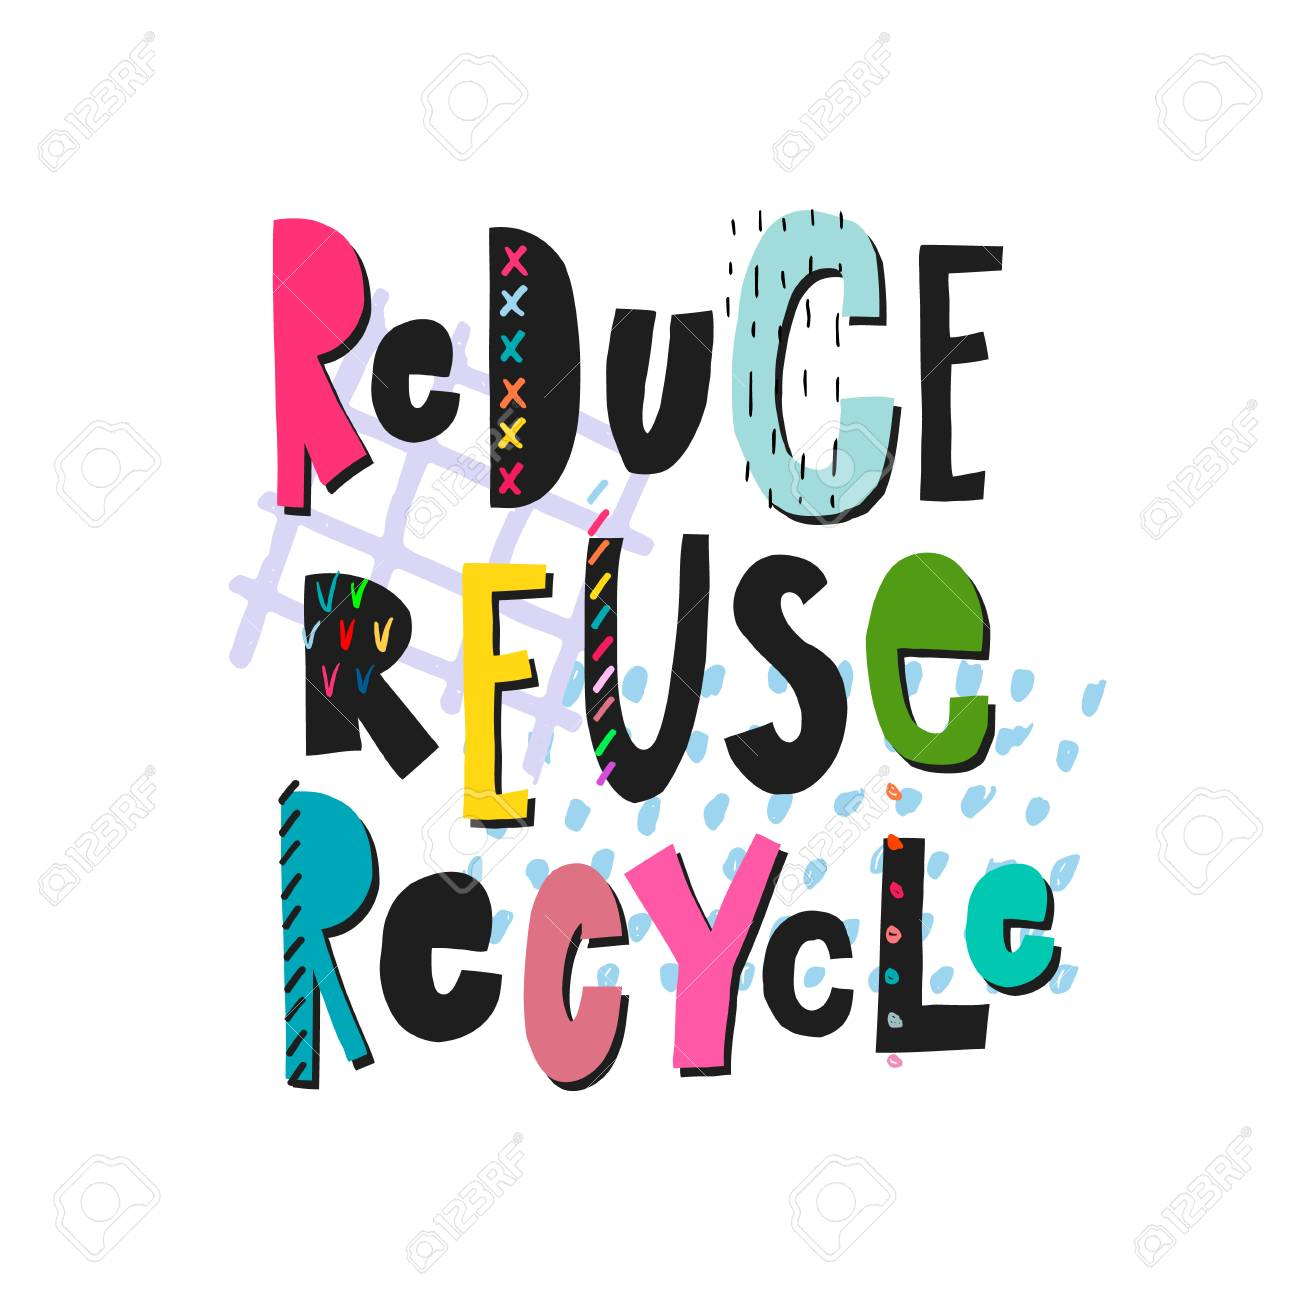 reduce reuse recycle weird abstract quote lettering calligraphy rh 123rf com